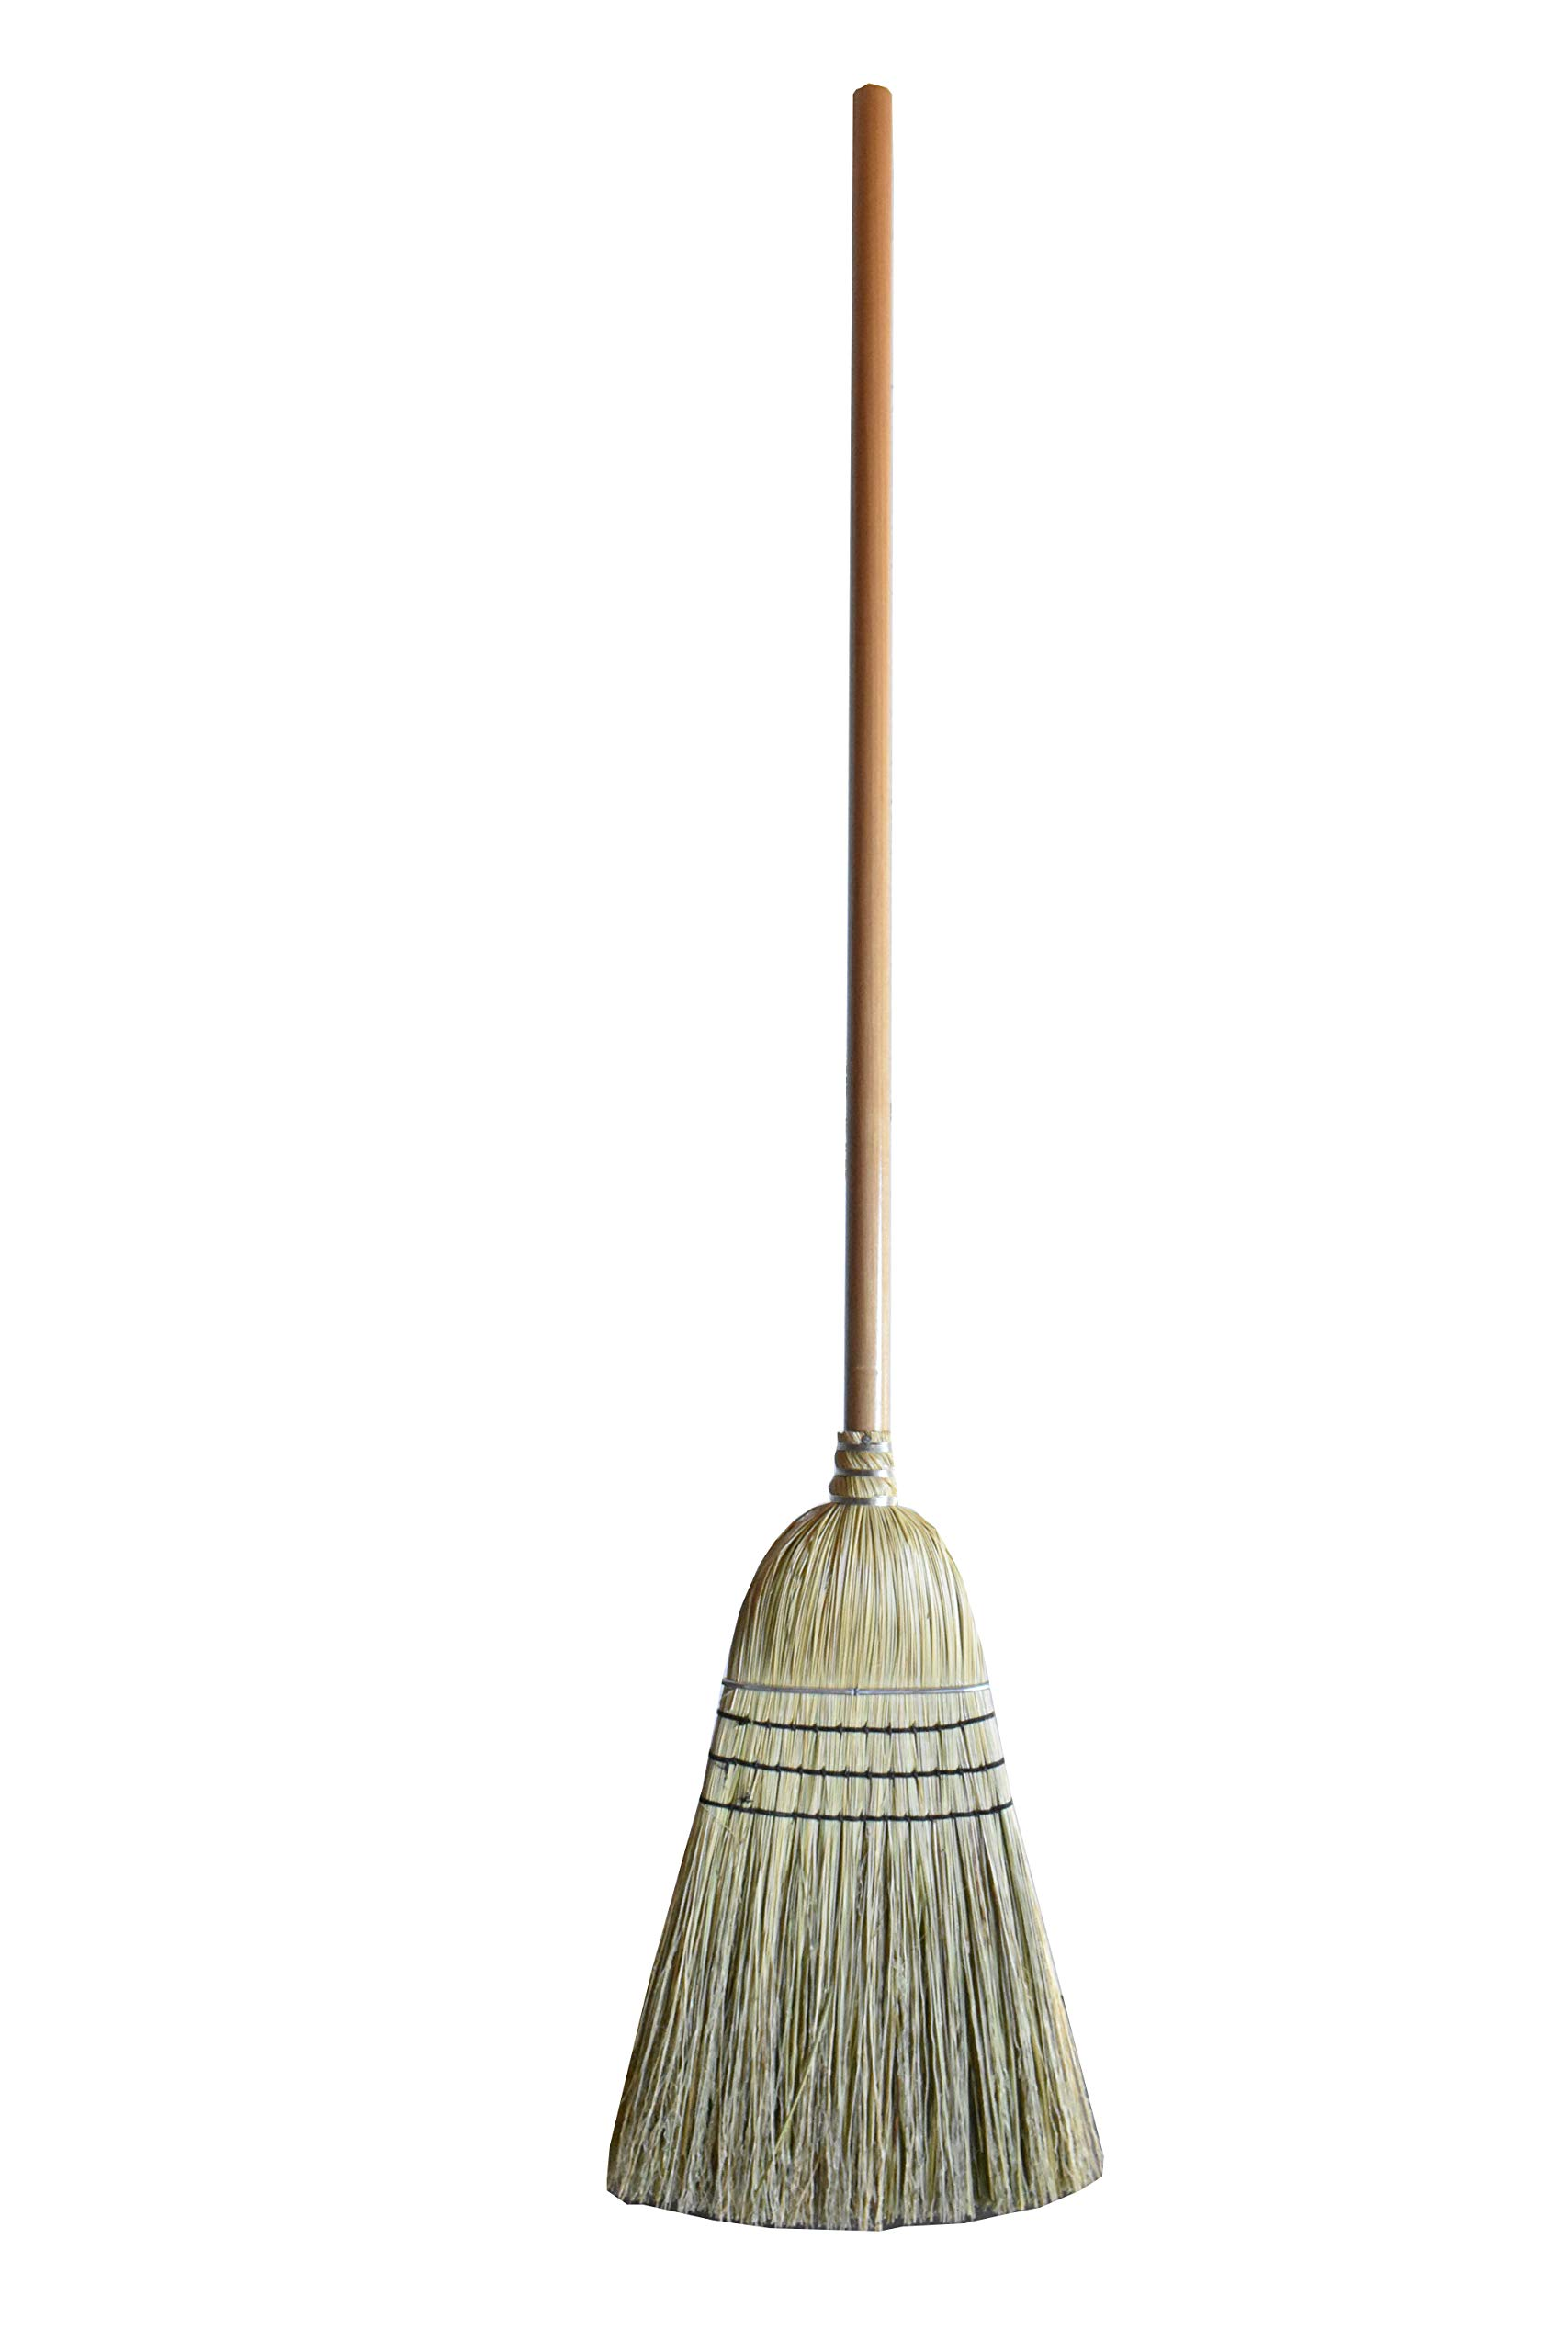 6 Pack Corn Straw Warehouse Broom for Sweeping Cleaning by a32 (Image #1)